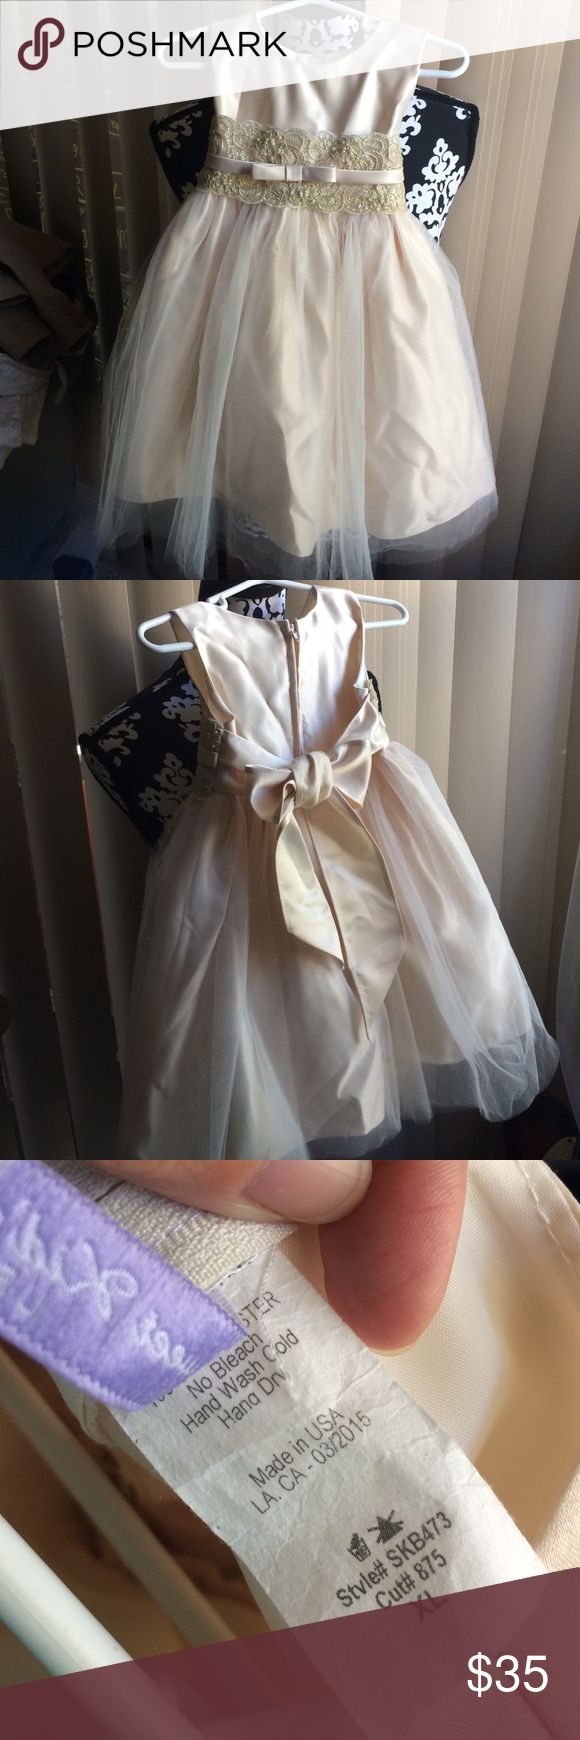 Beautiful satin and tulle special occasion dress Pictures don't do this dress justice. EUC worn once in a wedding. No visible flaws just needs to be steamed! Size is a baby's XL...fit my 24 lb 3 year-old perfectly. Color is champagne. Dresses Formal